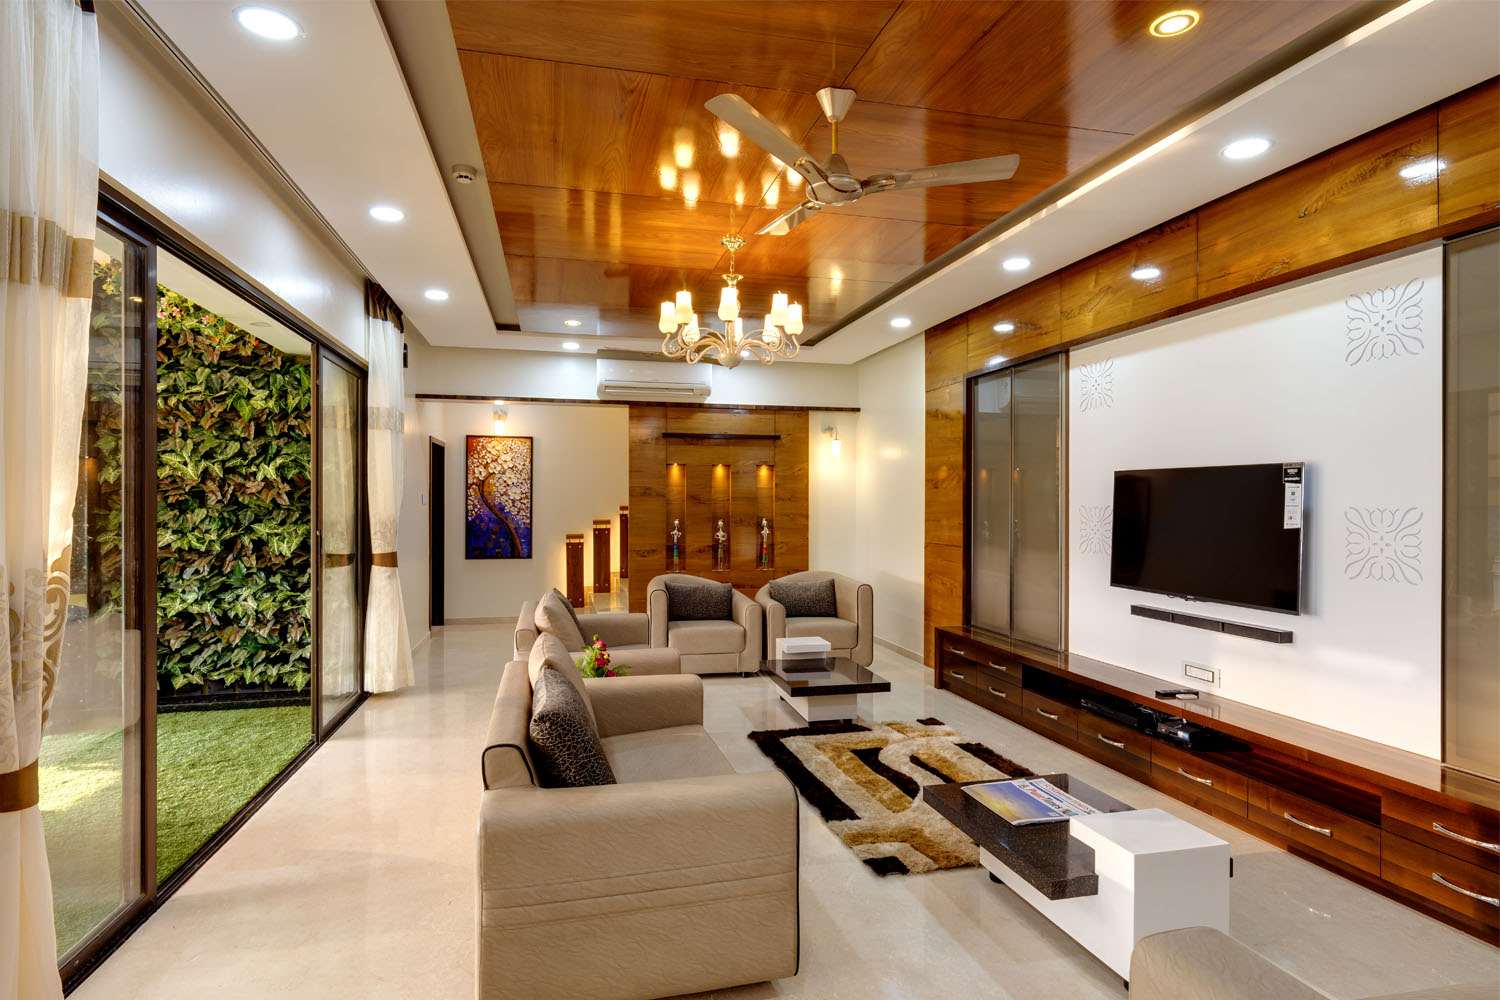 How much do interior designers charge in pune www Home interior design etobicoke